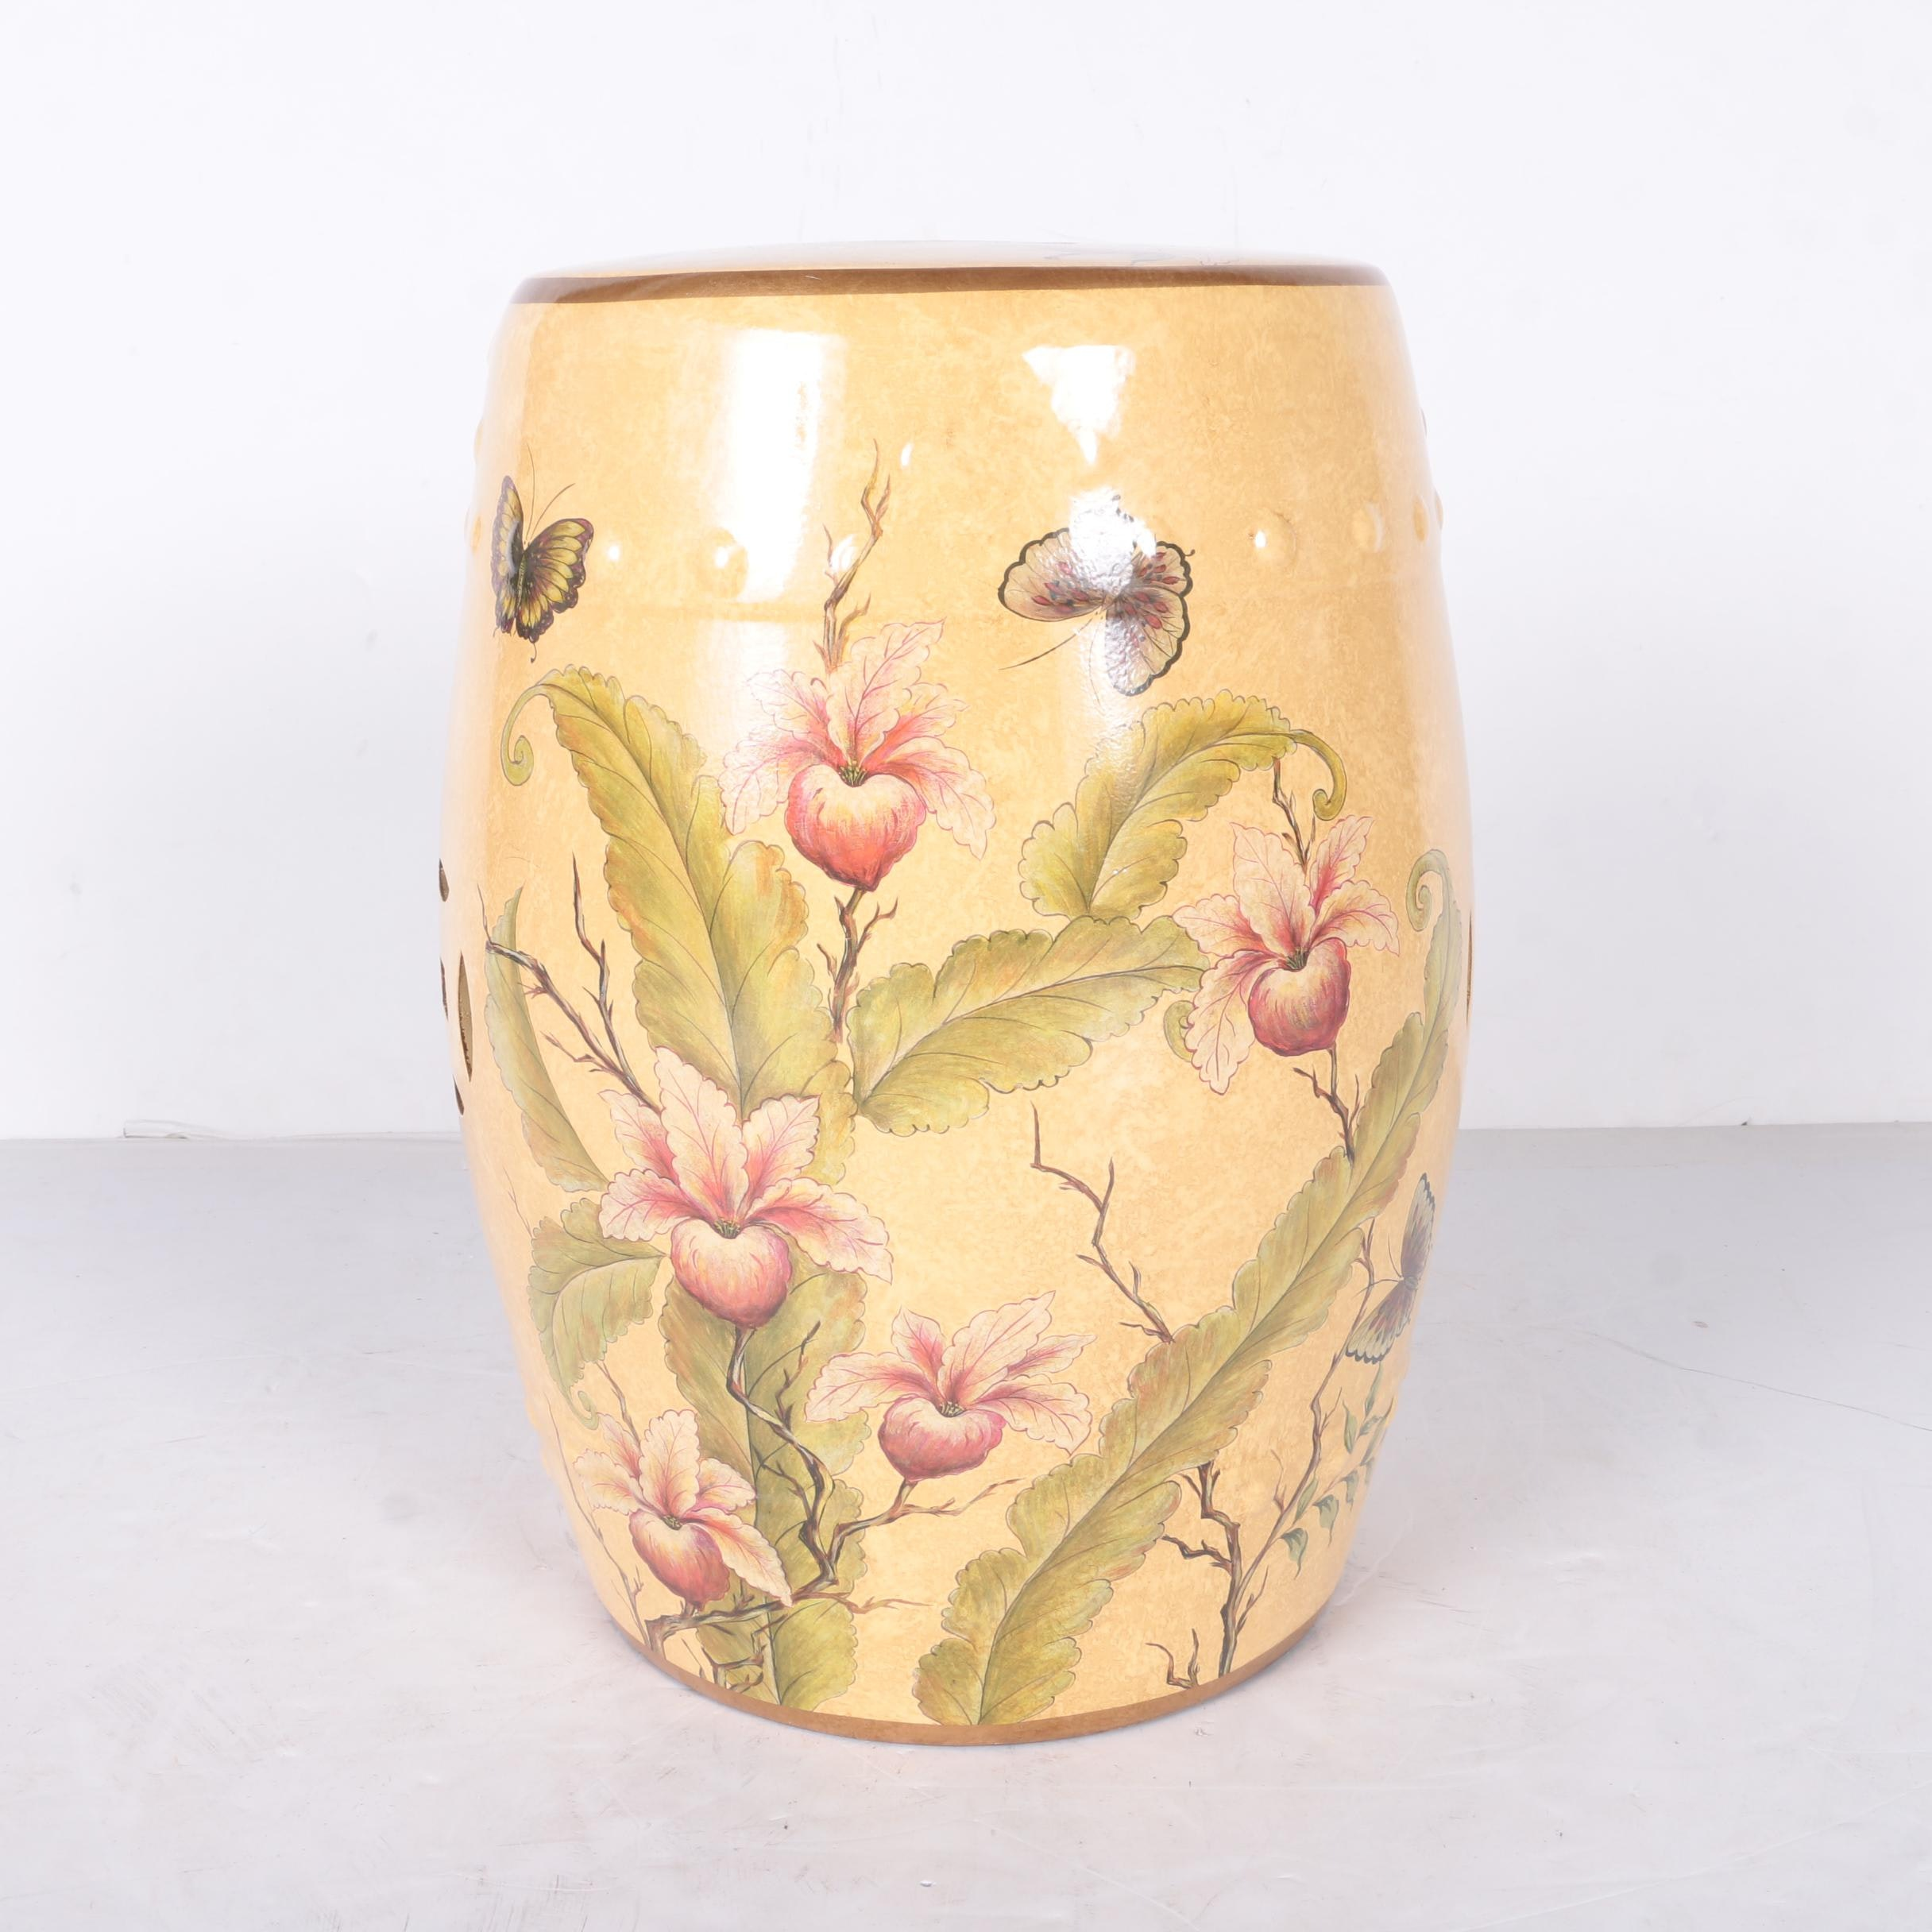 Chinese Ceramic Floral Garden Seat